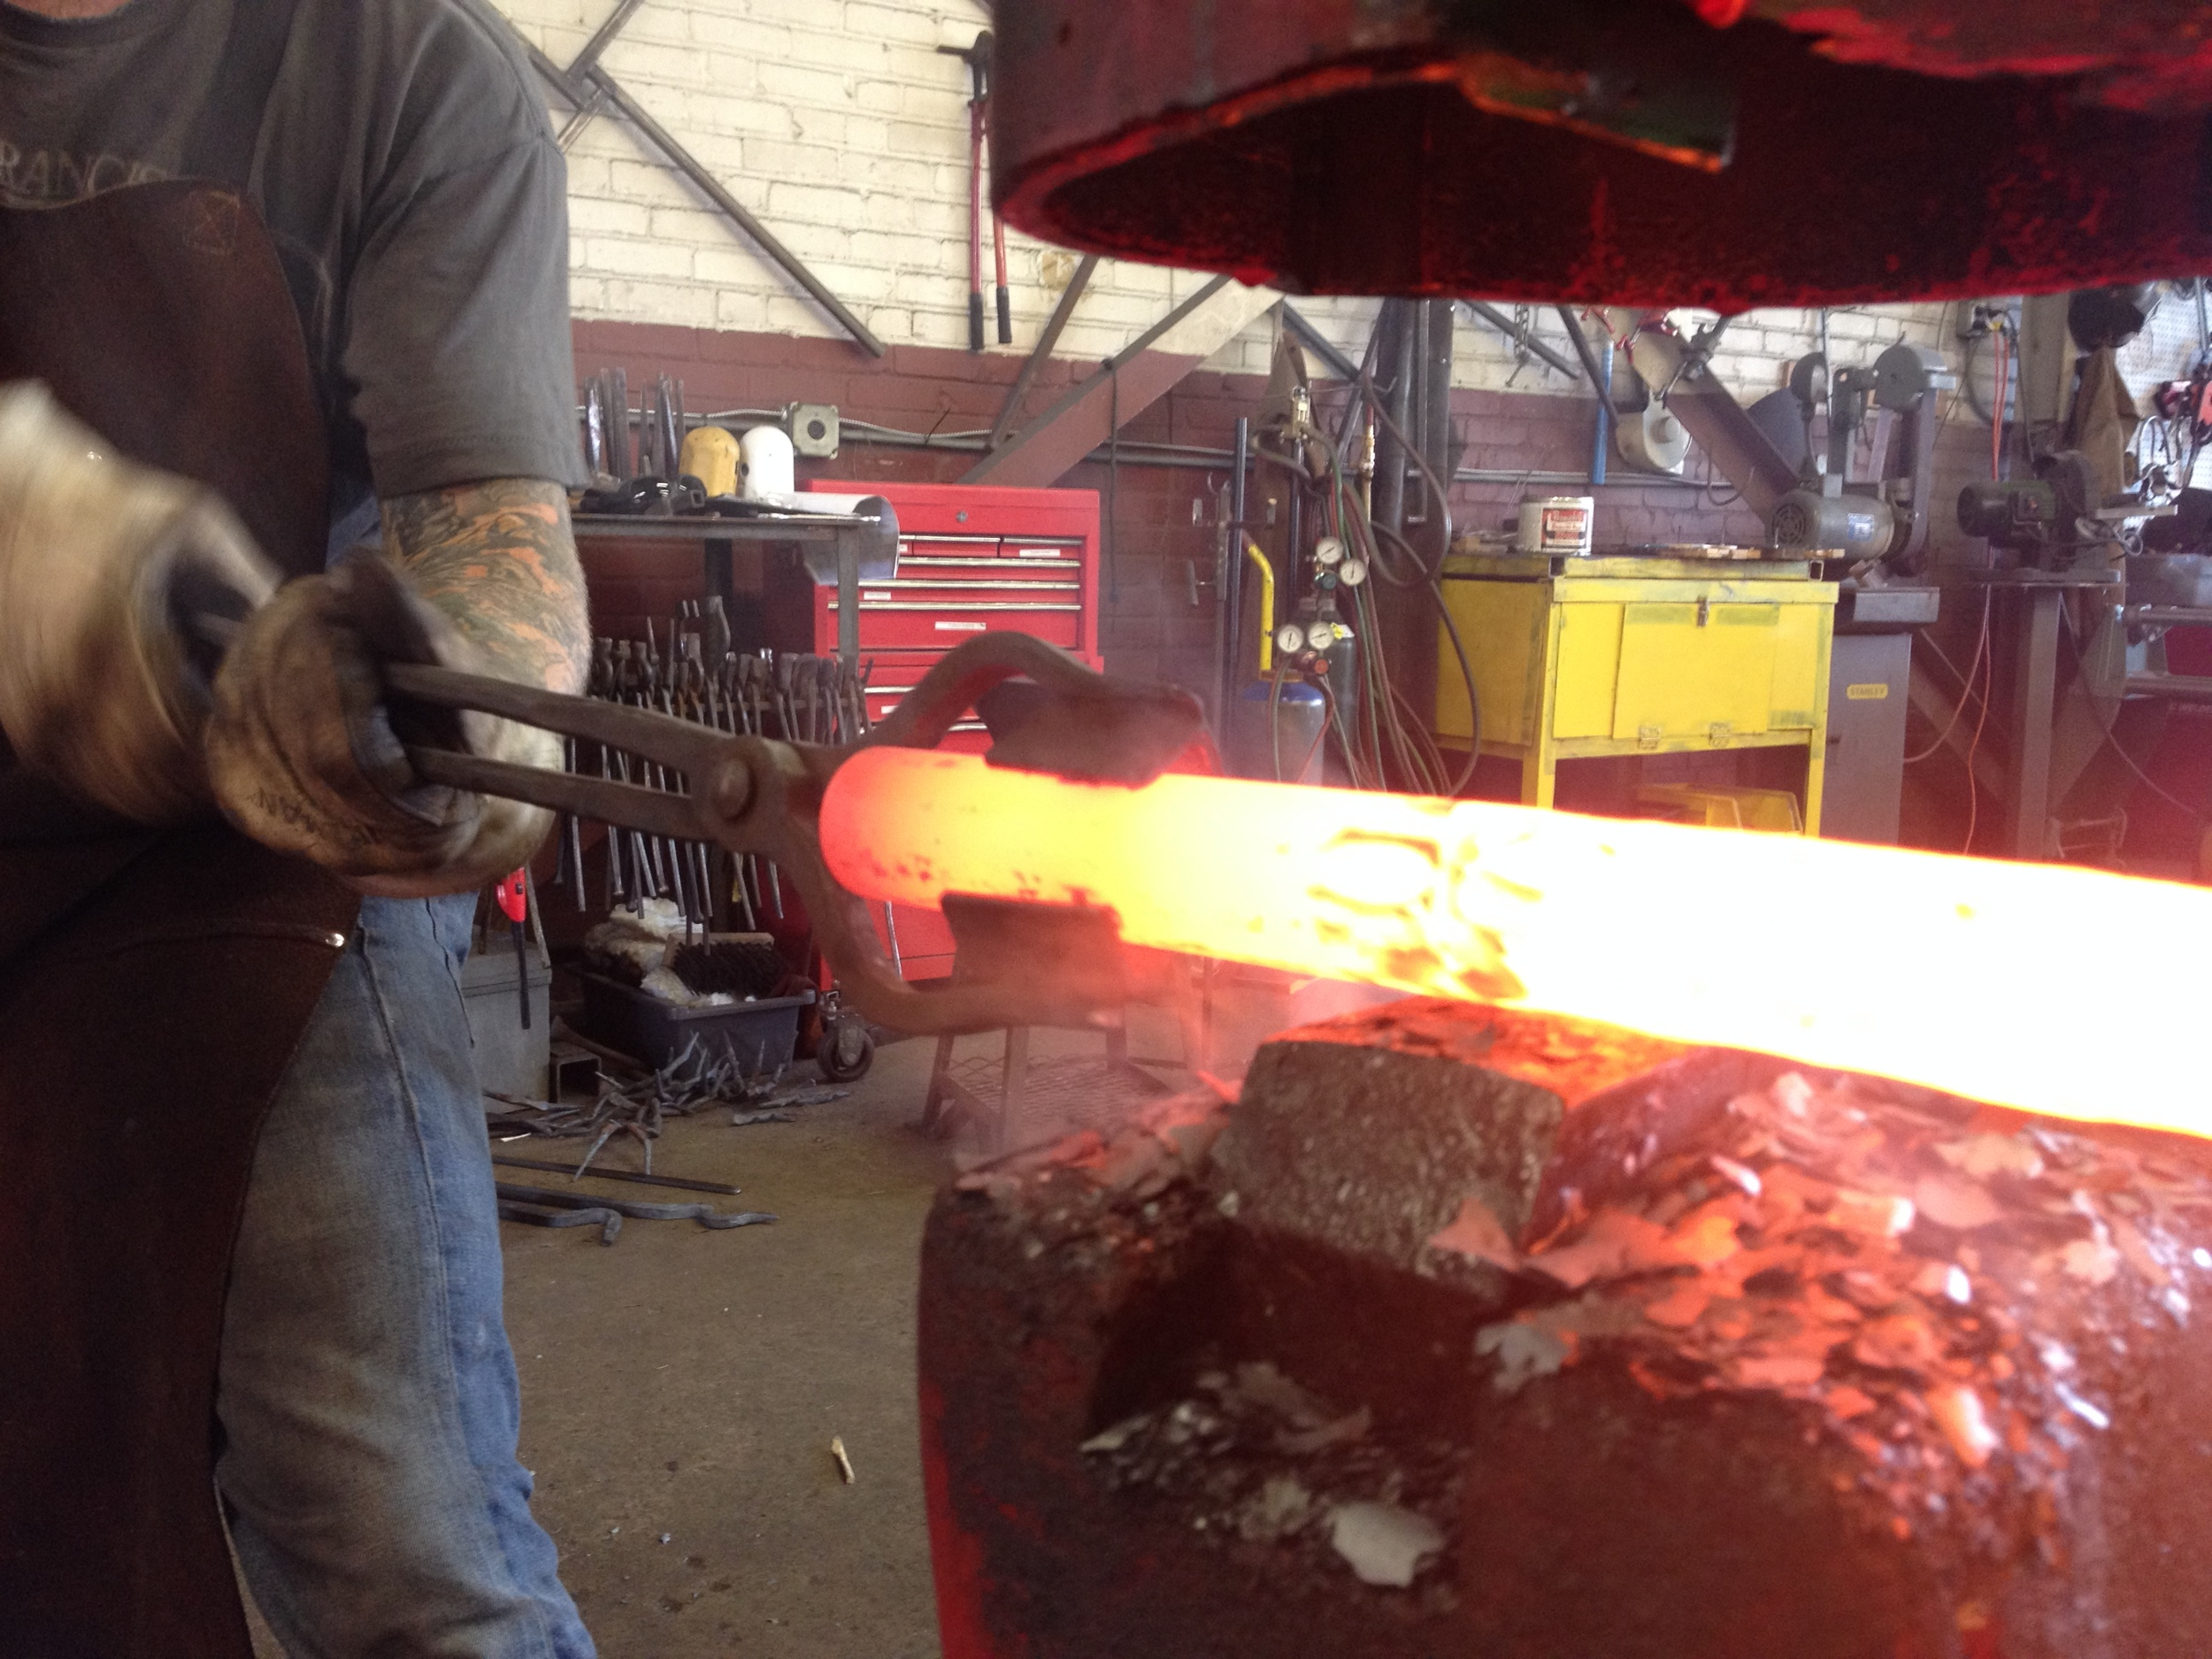 Texturing steel with the power hammer